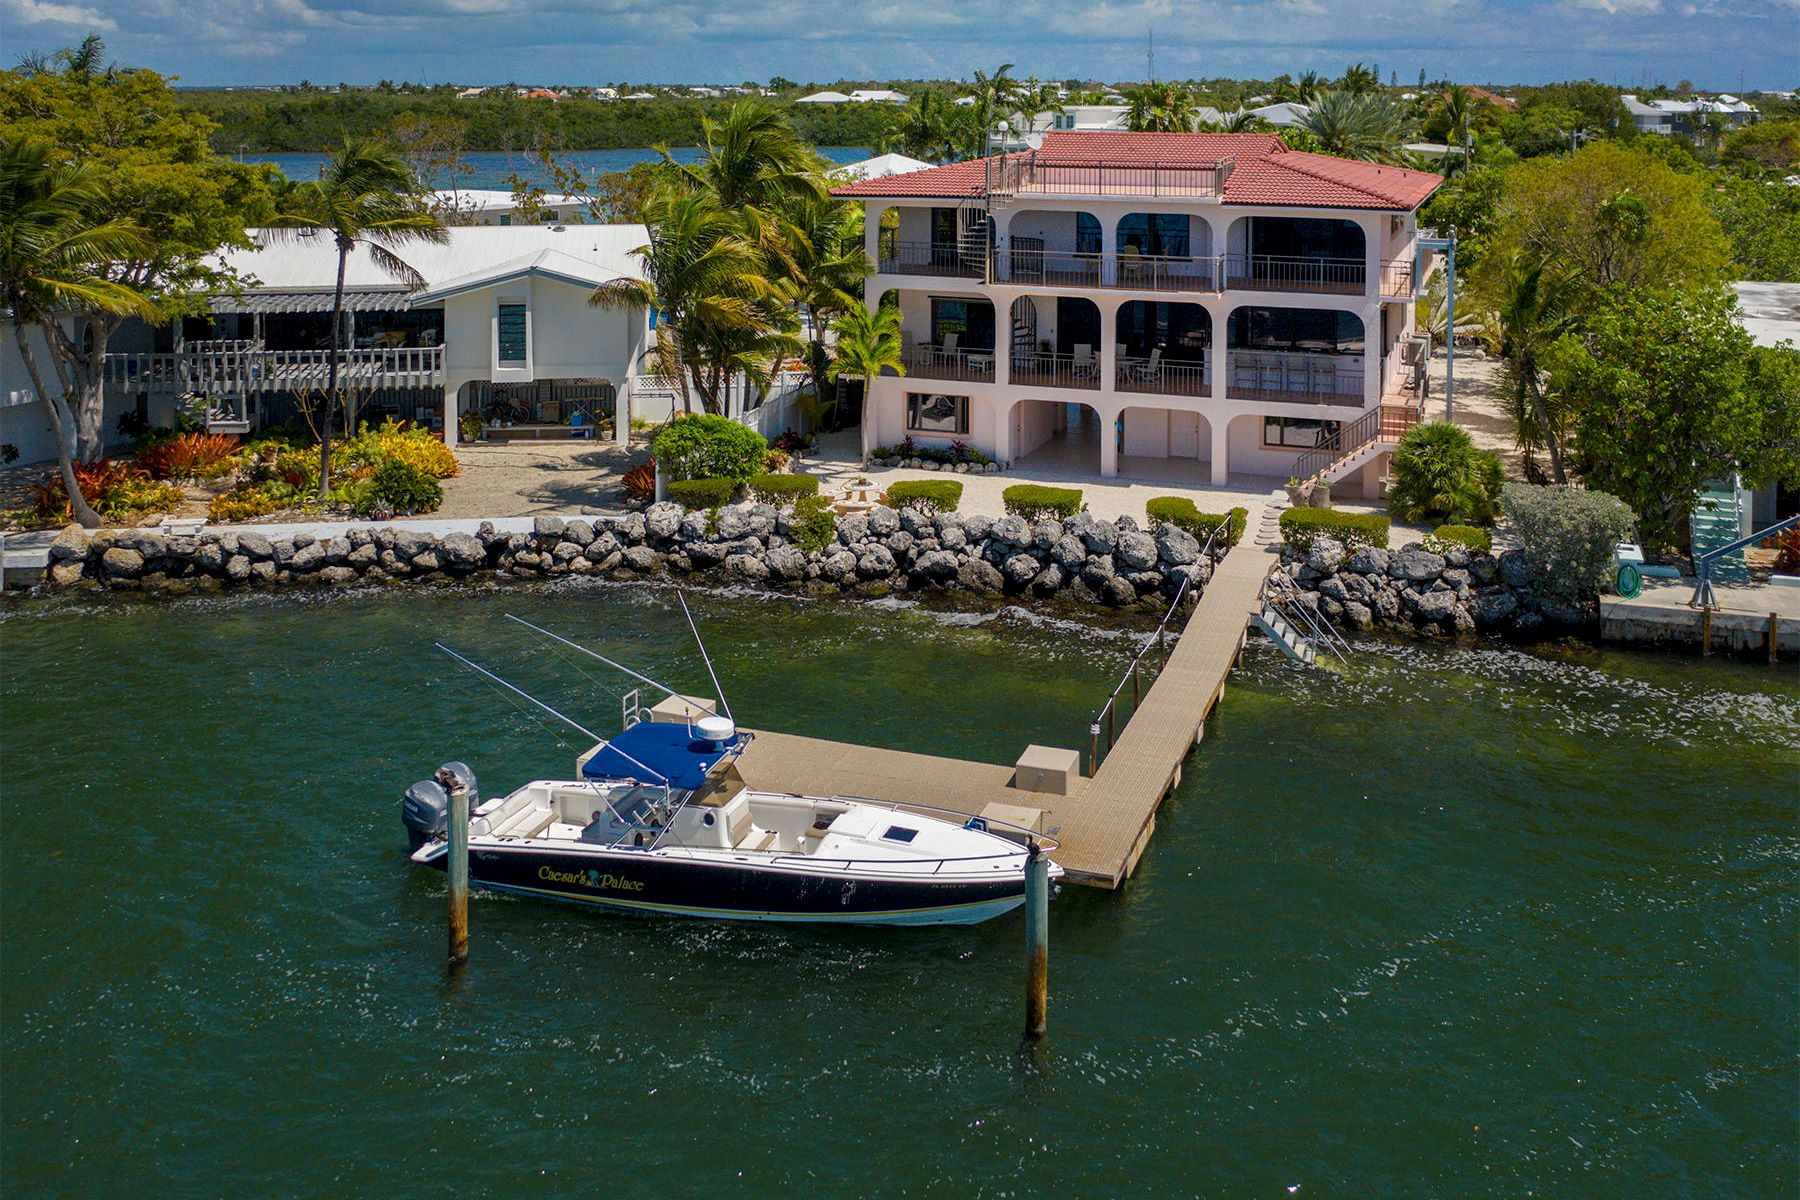 Single Family Homes for Active at 158 Redwing Road, Islamorada, FL 158 Redwing Road Islamorada, Florida 33070 United States